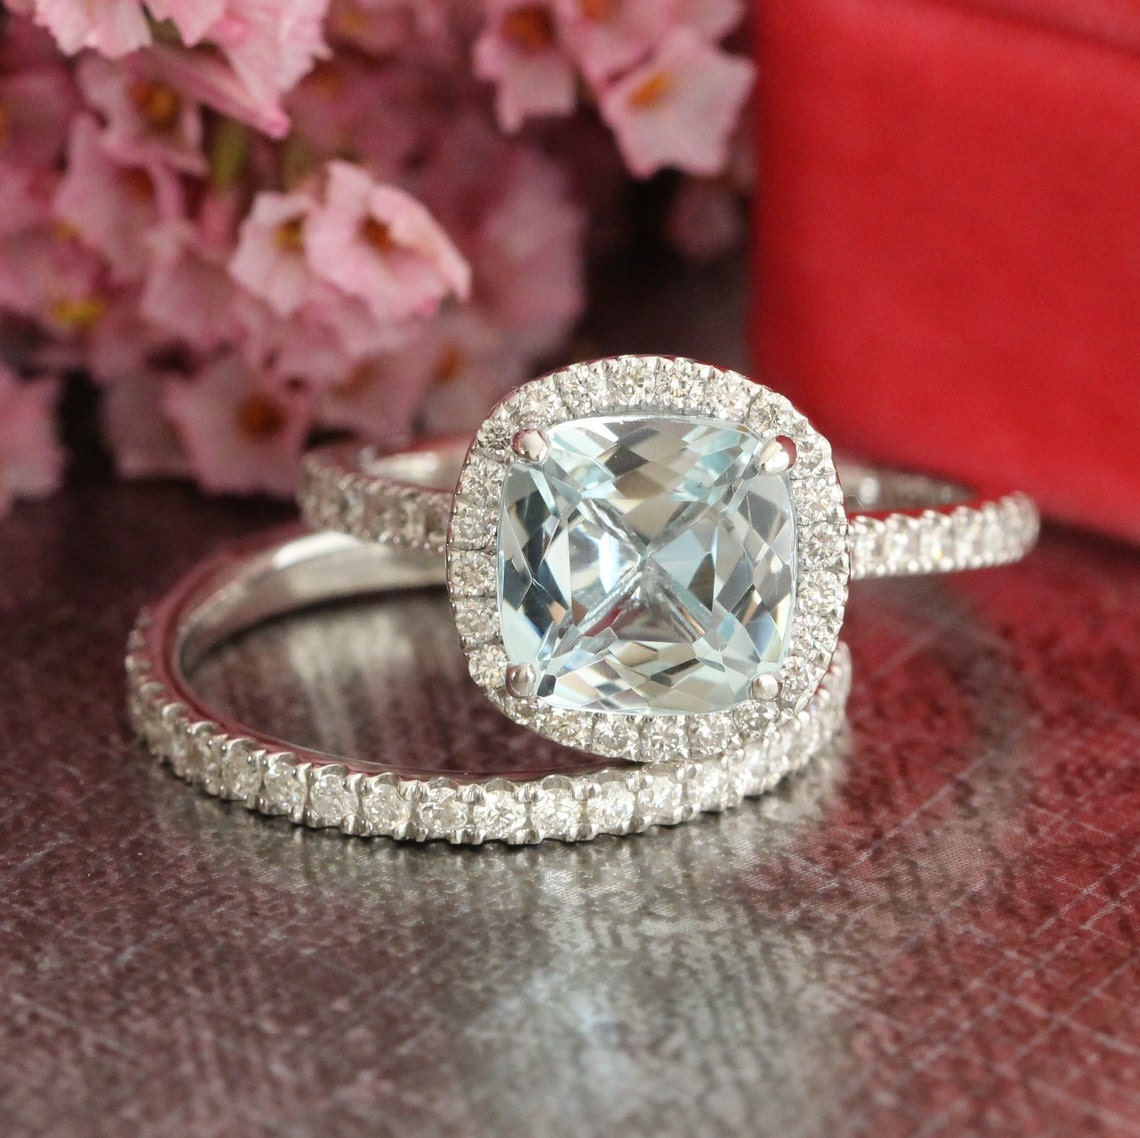 aquamarine wedding ring set in 14k white gold halo diamond. Black Bedroom Furniture Sets. Home Design Ideas